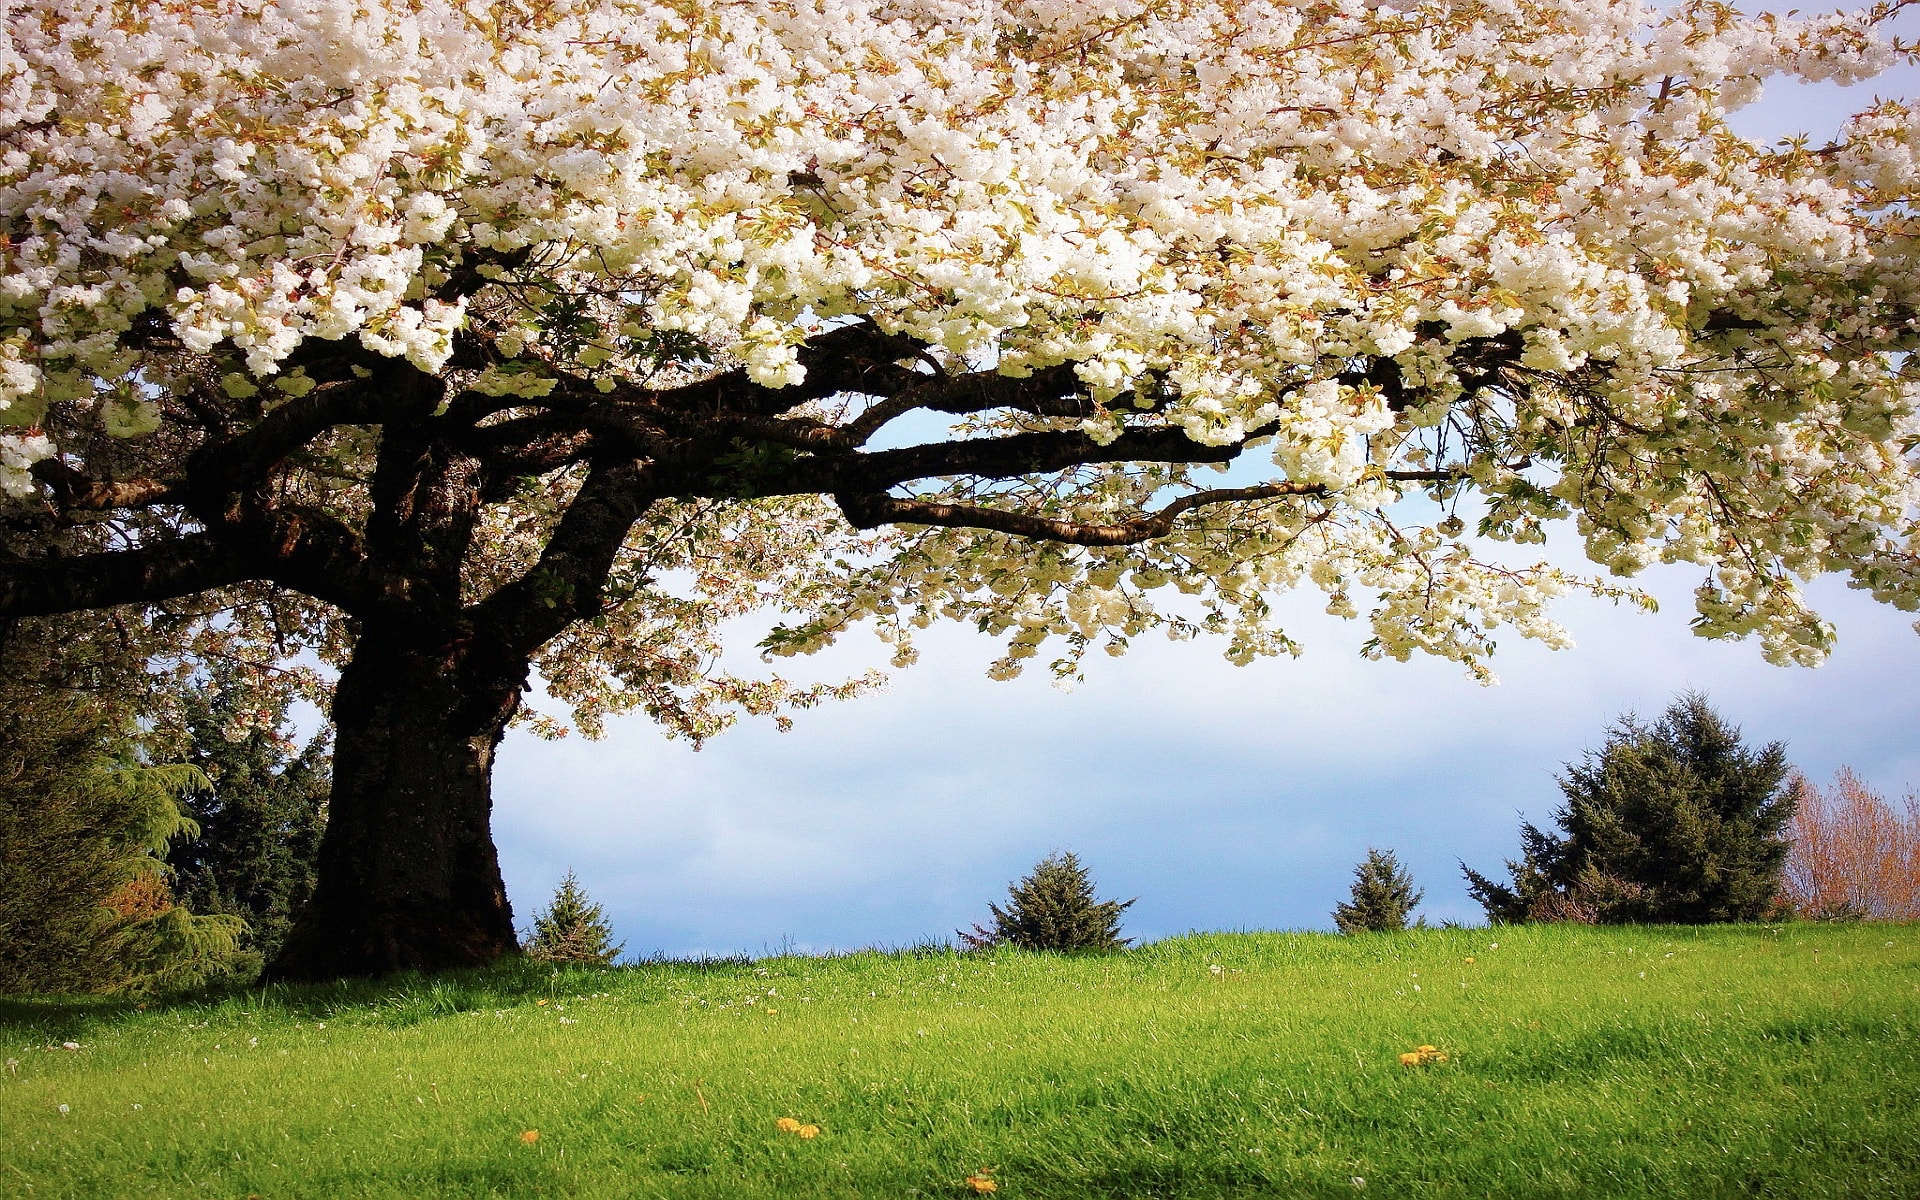 spring trees background - photo #6